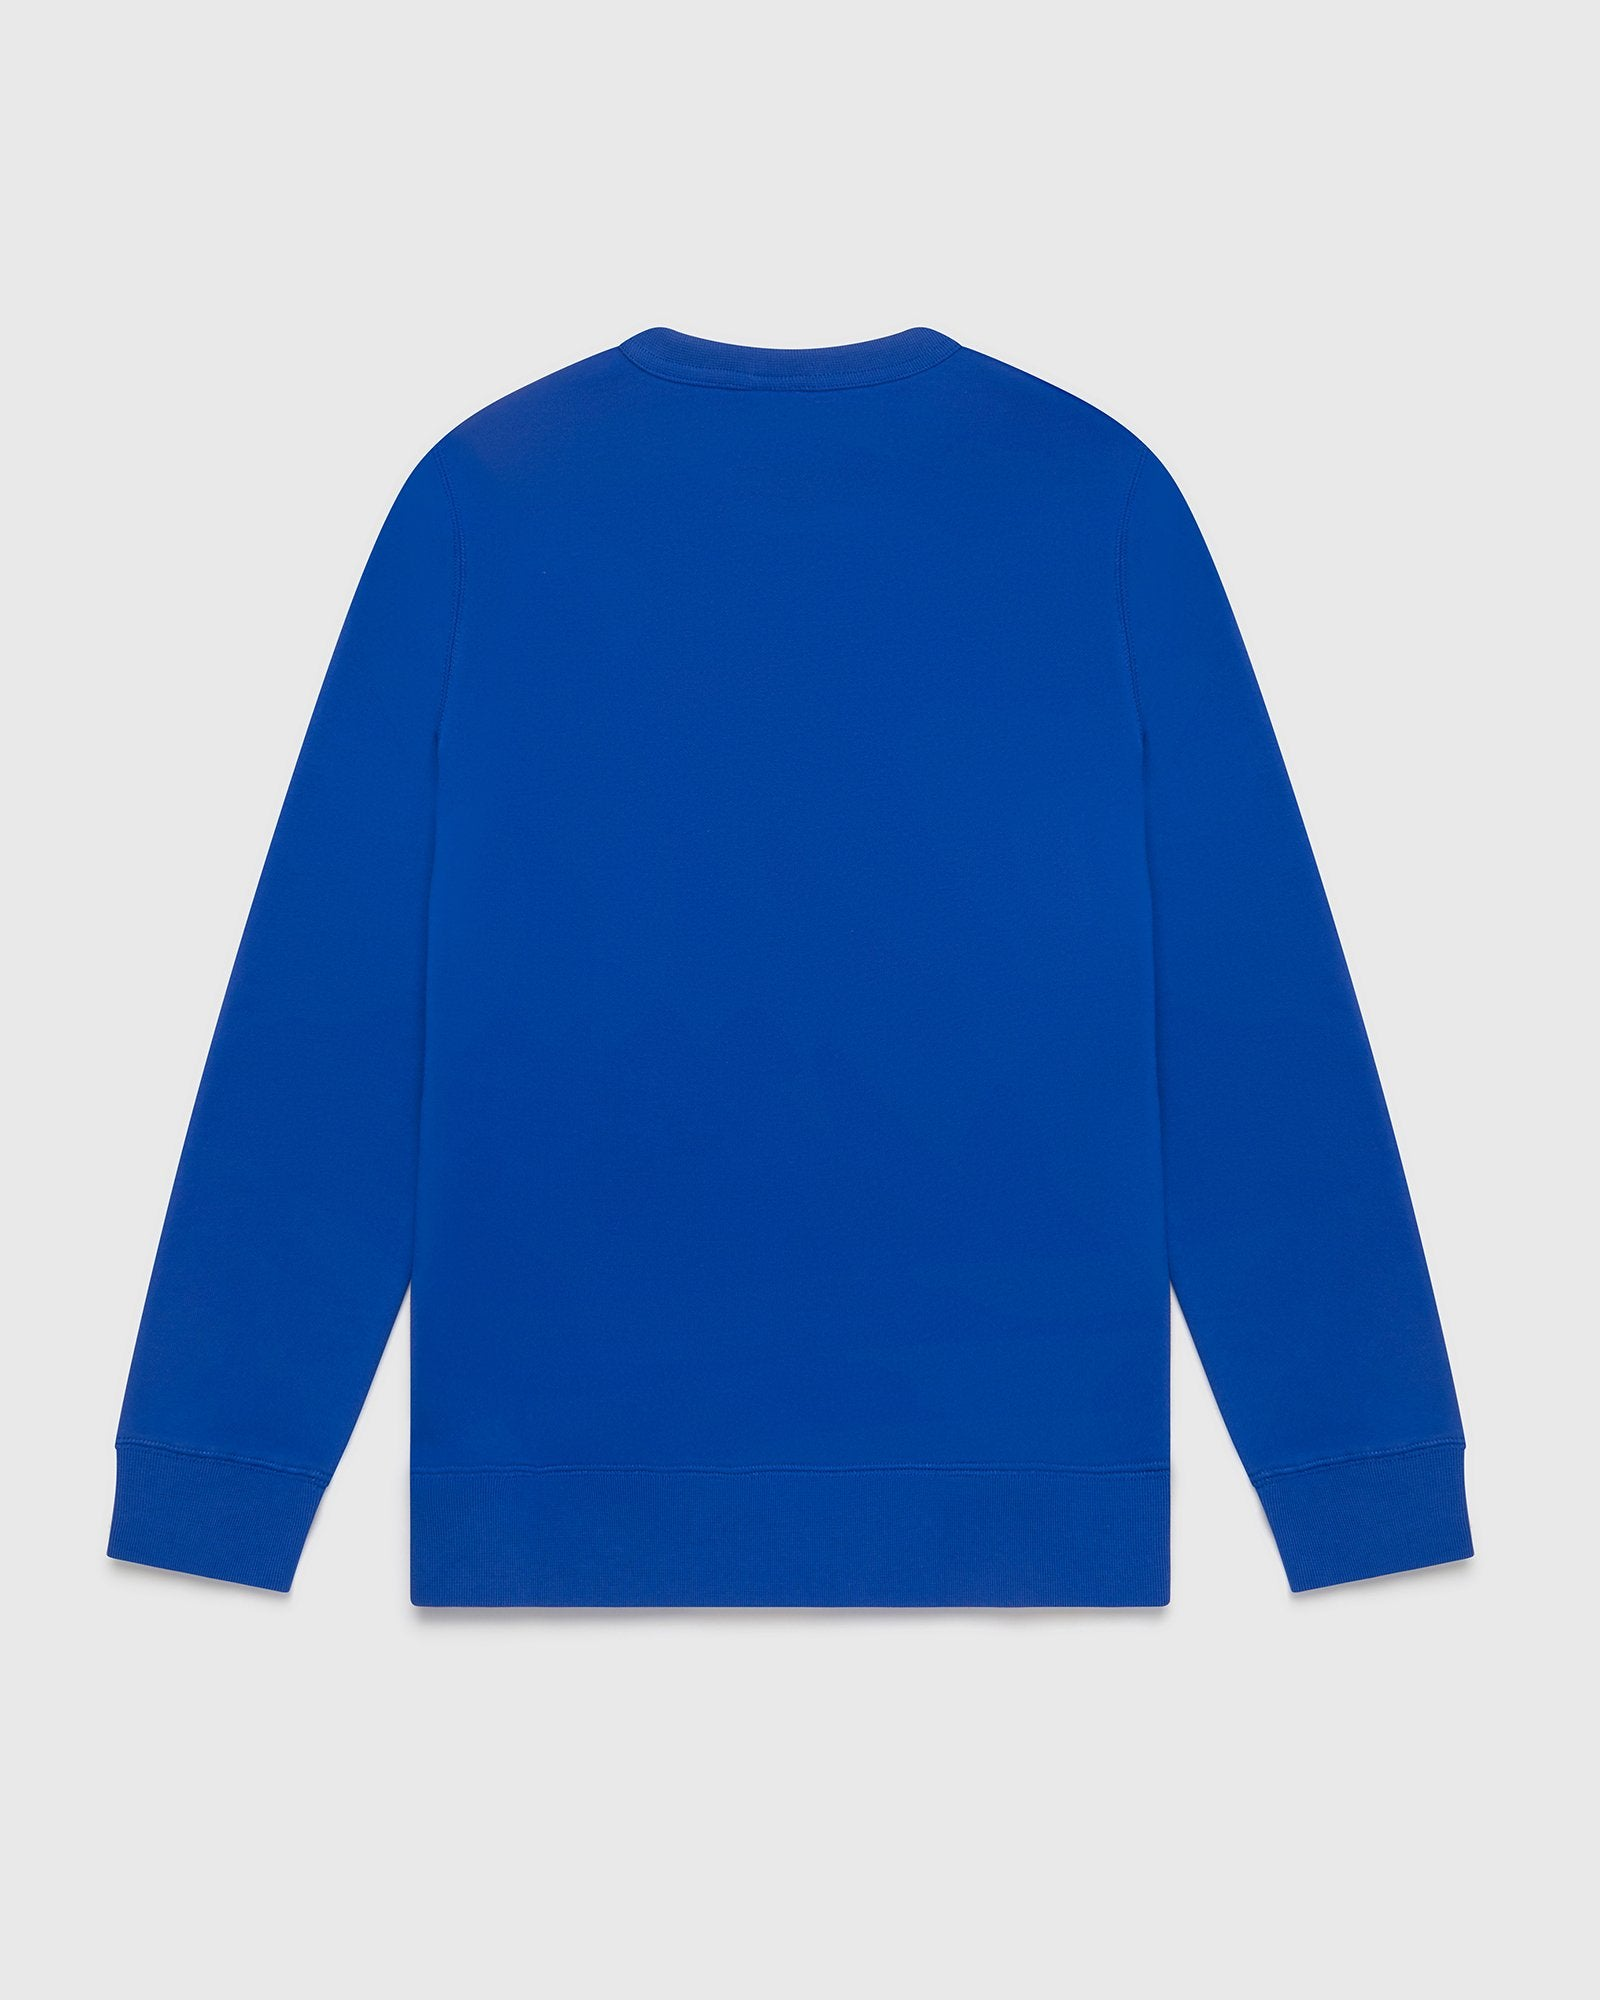 OVO COLLEGIATE CREWNECK - ROYAL BLUE IMAGE #2